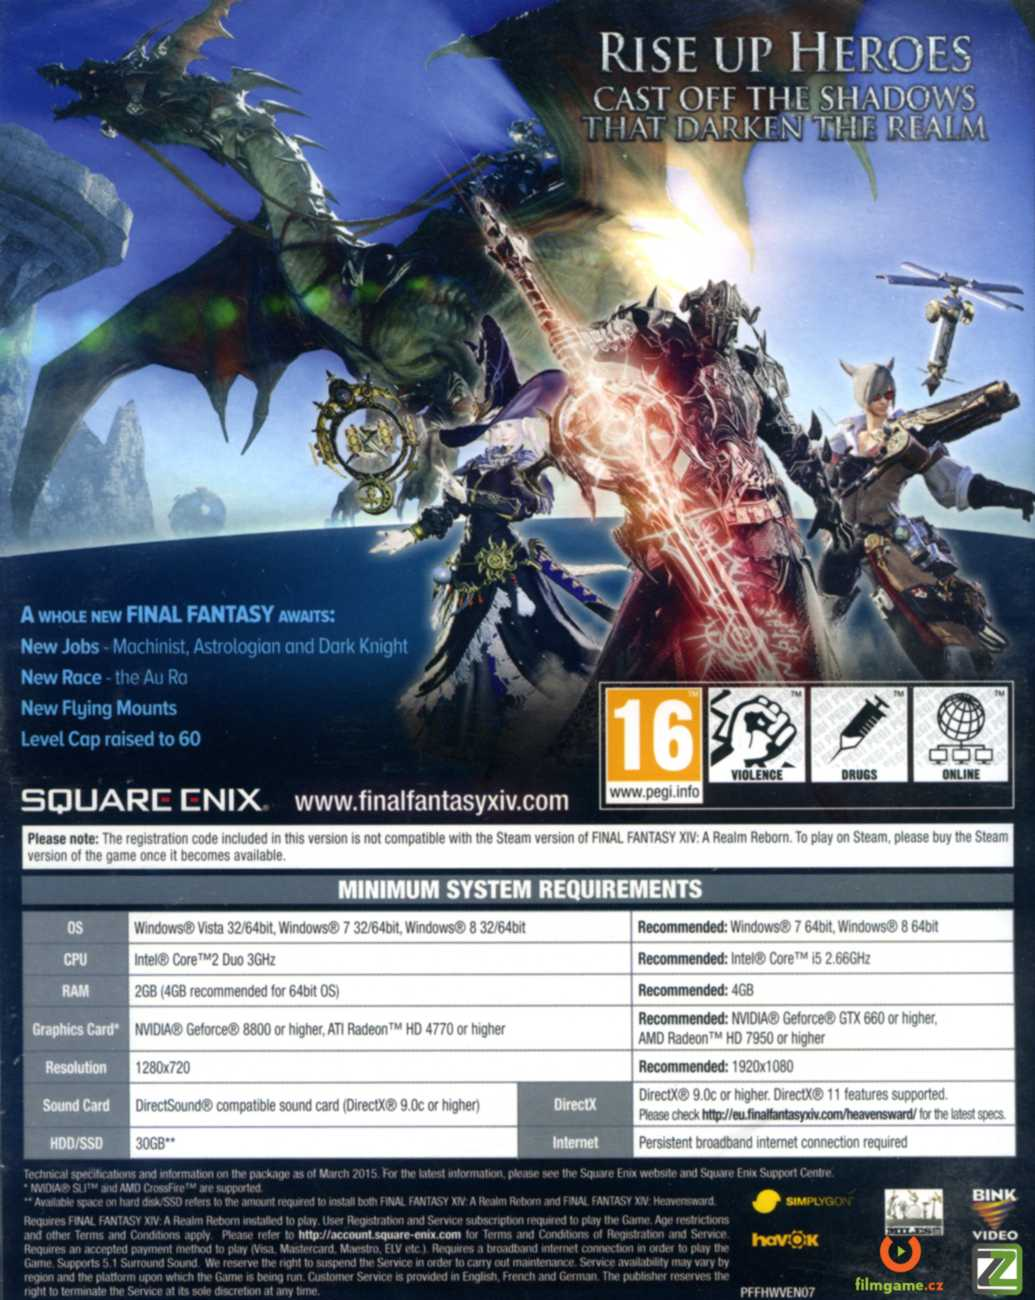 FINAL FANTASY XIV: HEAVENSWARD (Online) - PC